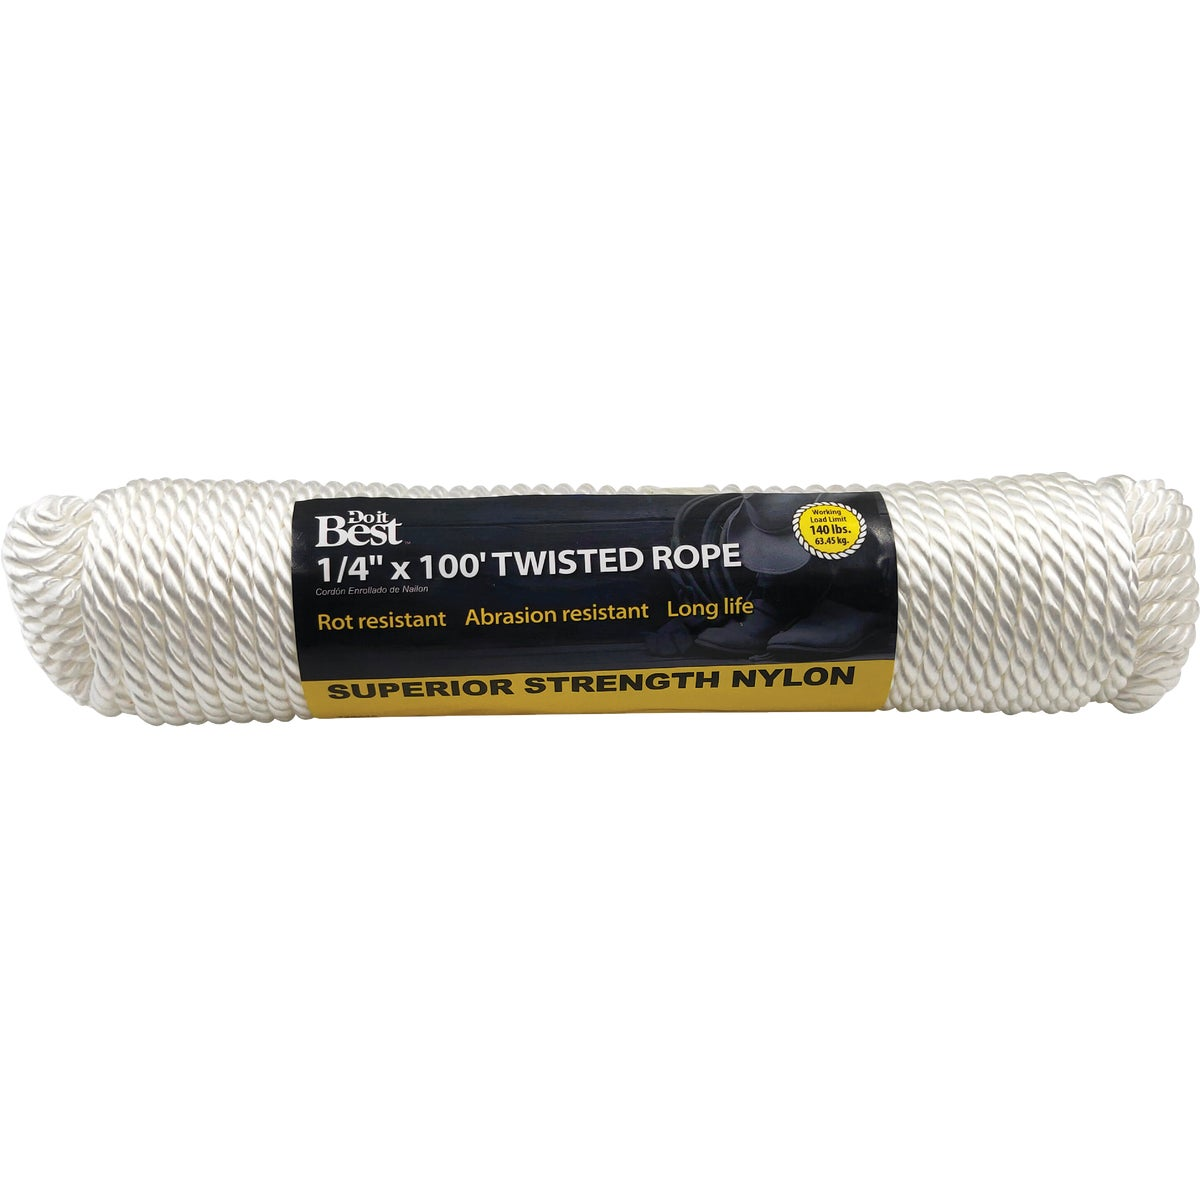 "1/4""X100' NYL TWIST ROPE - 729625 by Do it Best"